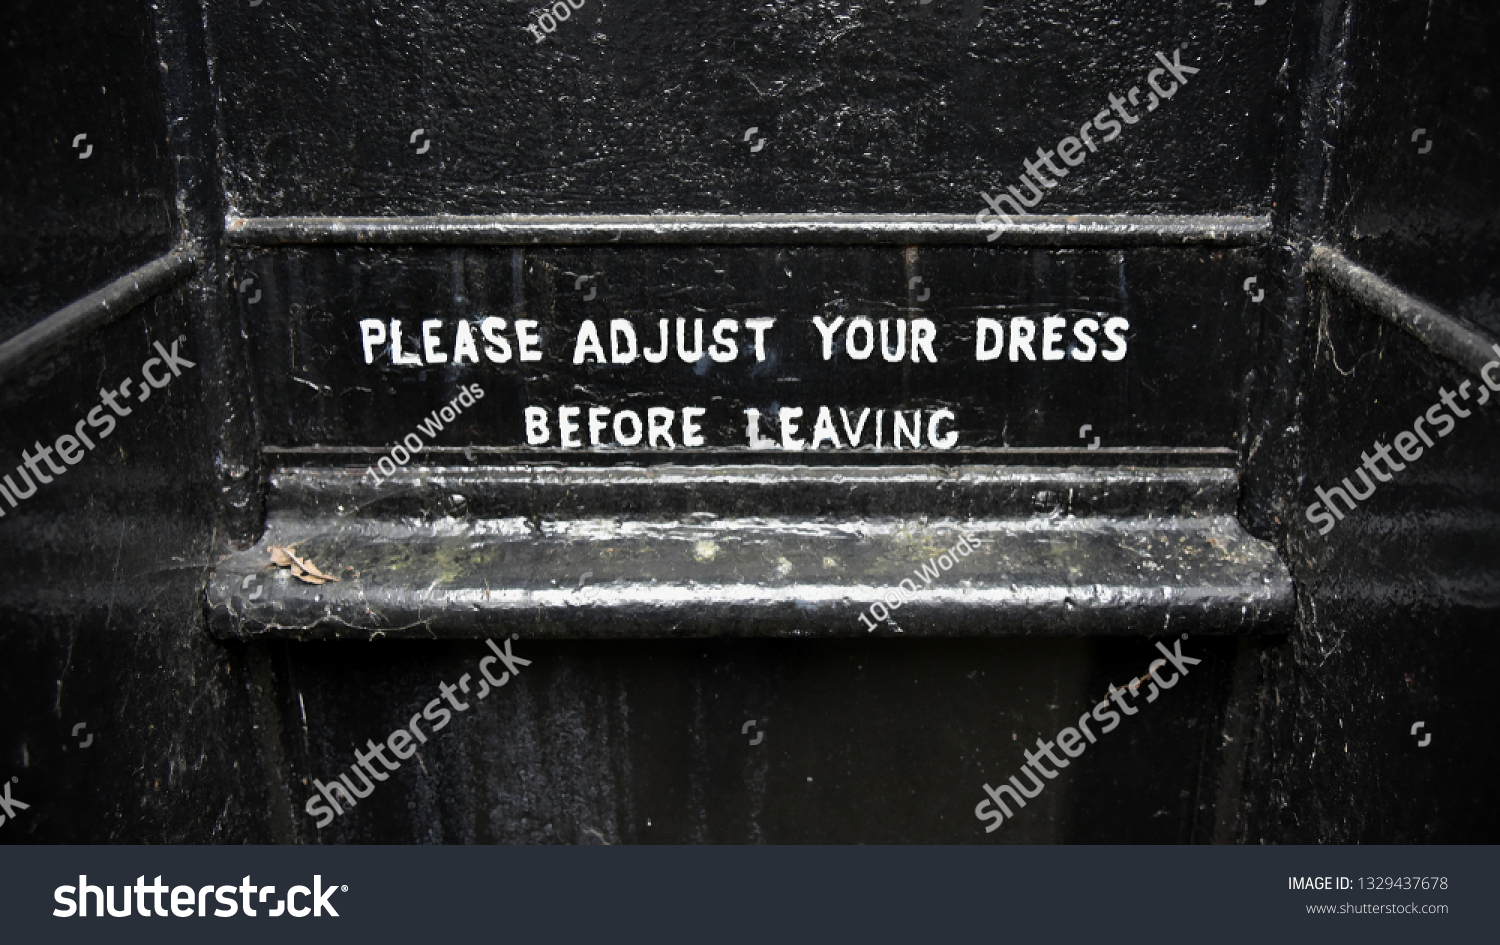 wall art PLEASE ADJUST YOUR DRESS METAL SIGN  RETRO VINTAGE STYLE toilet